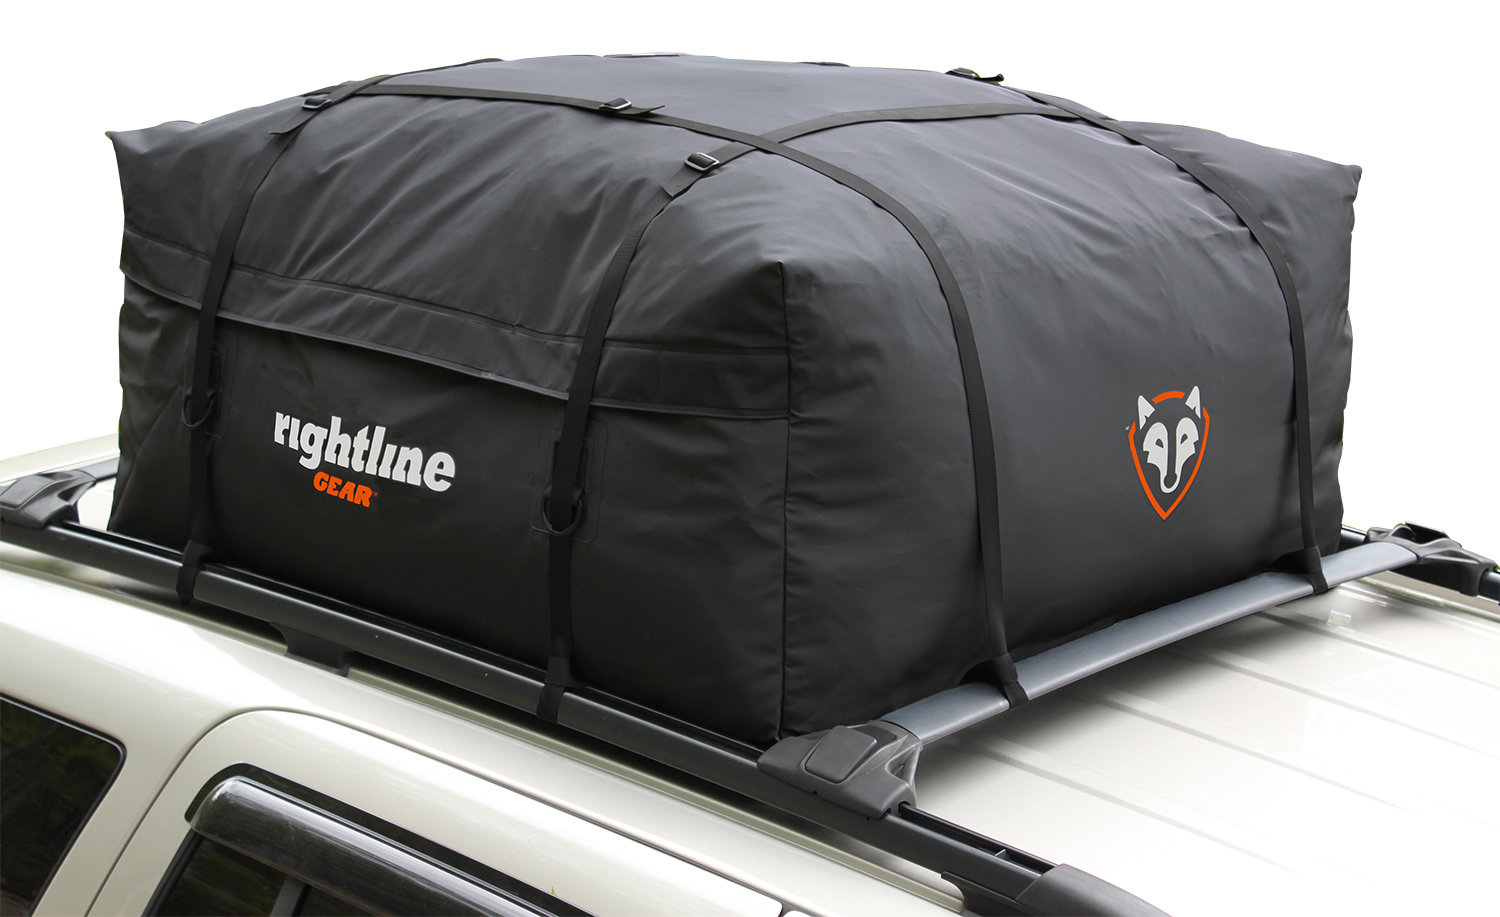 Rightline Gear Edge Car Top Carrier Free Shipping